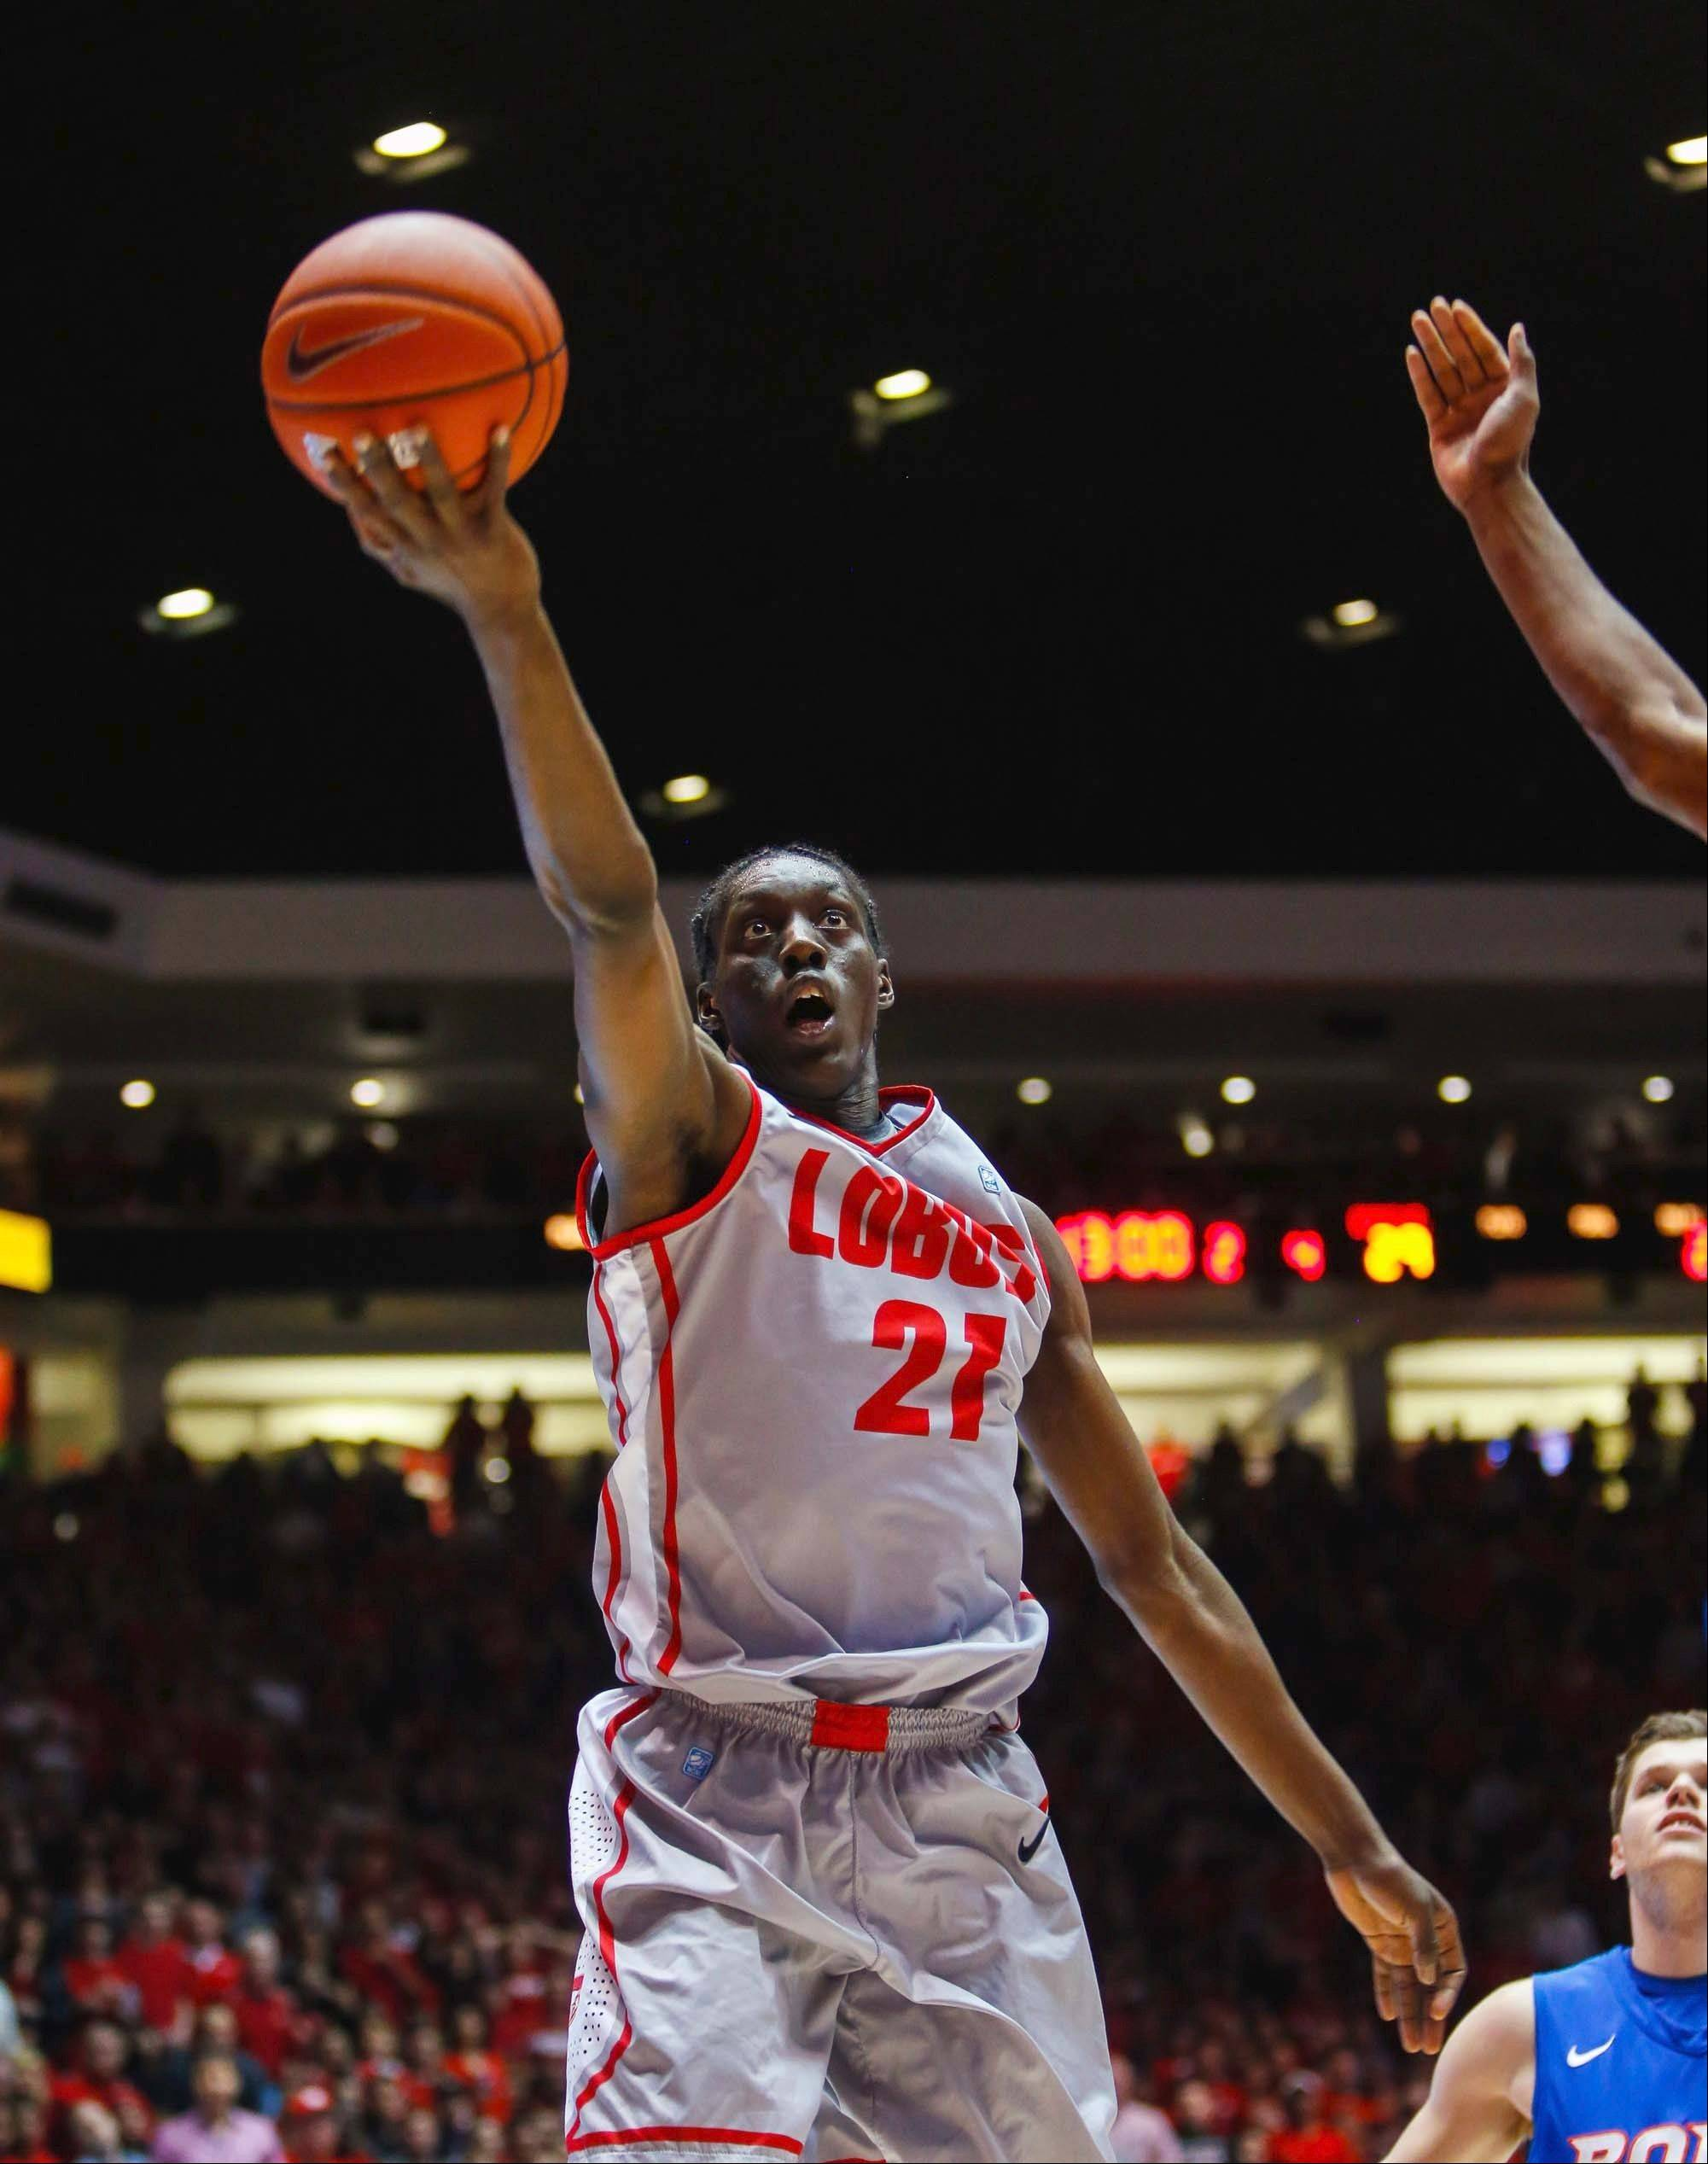 The Bulls made New Mexico forward Tony Snell the 20th overall pick in the 2013 NBA draft on Thursday night.